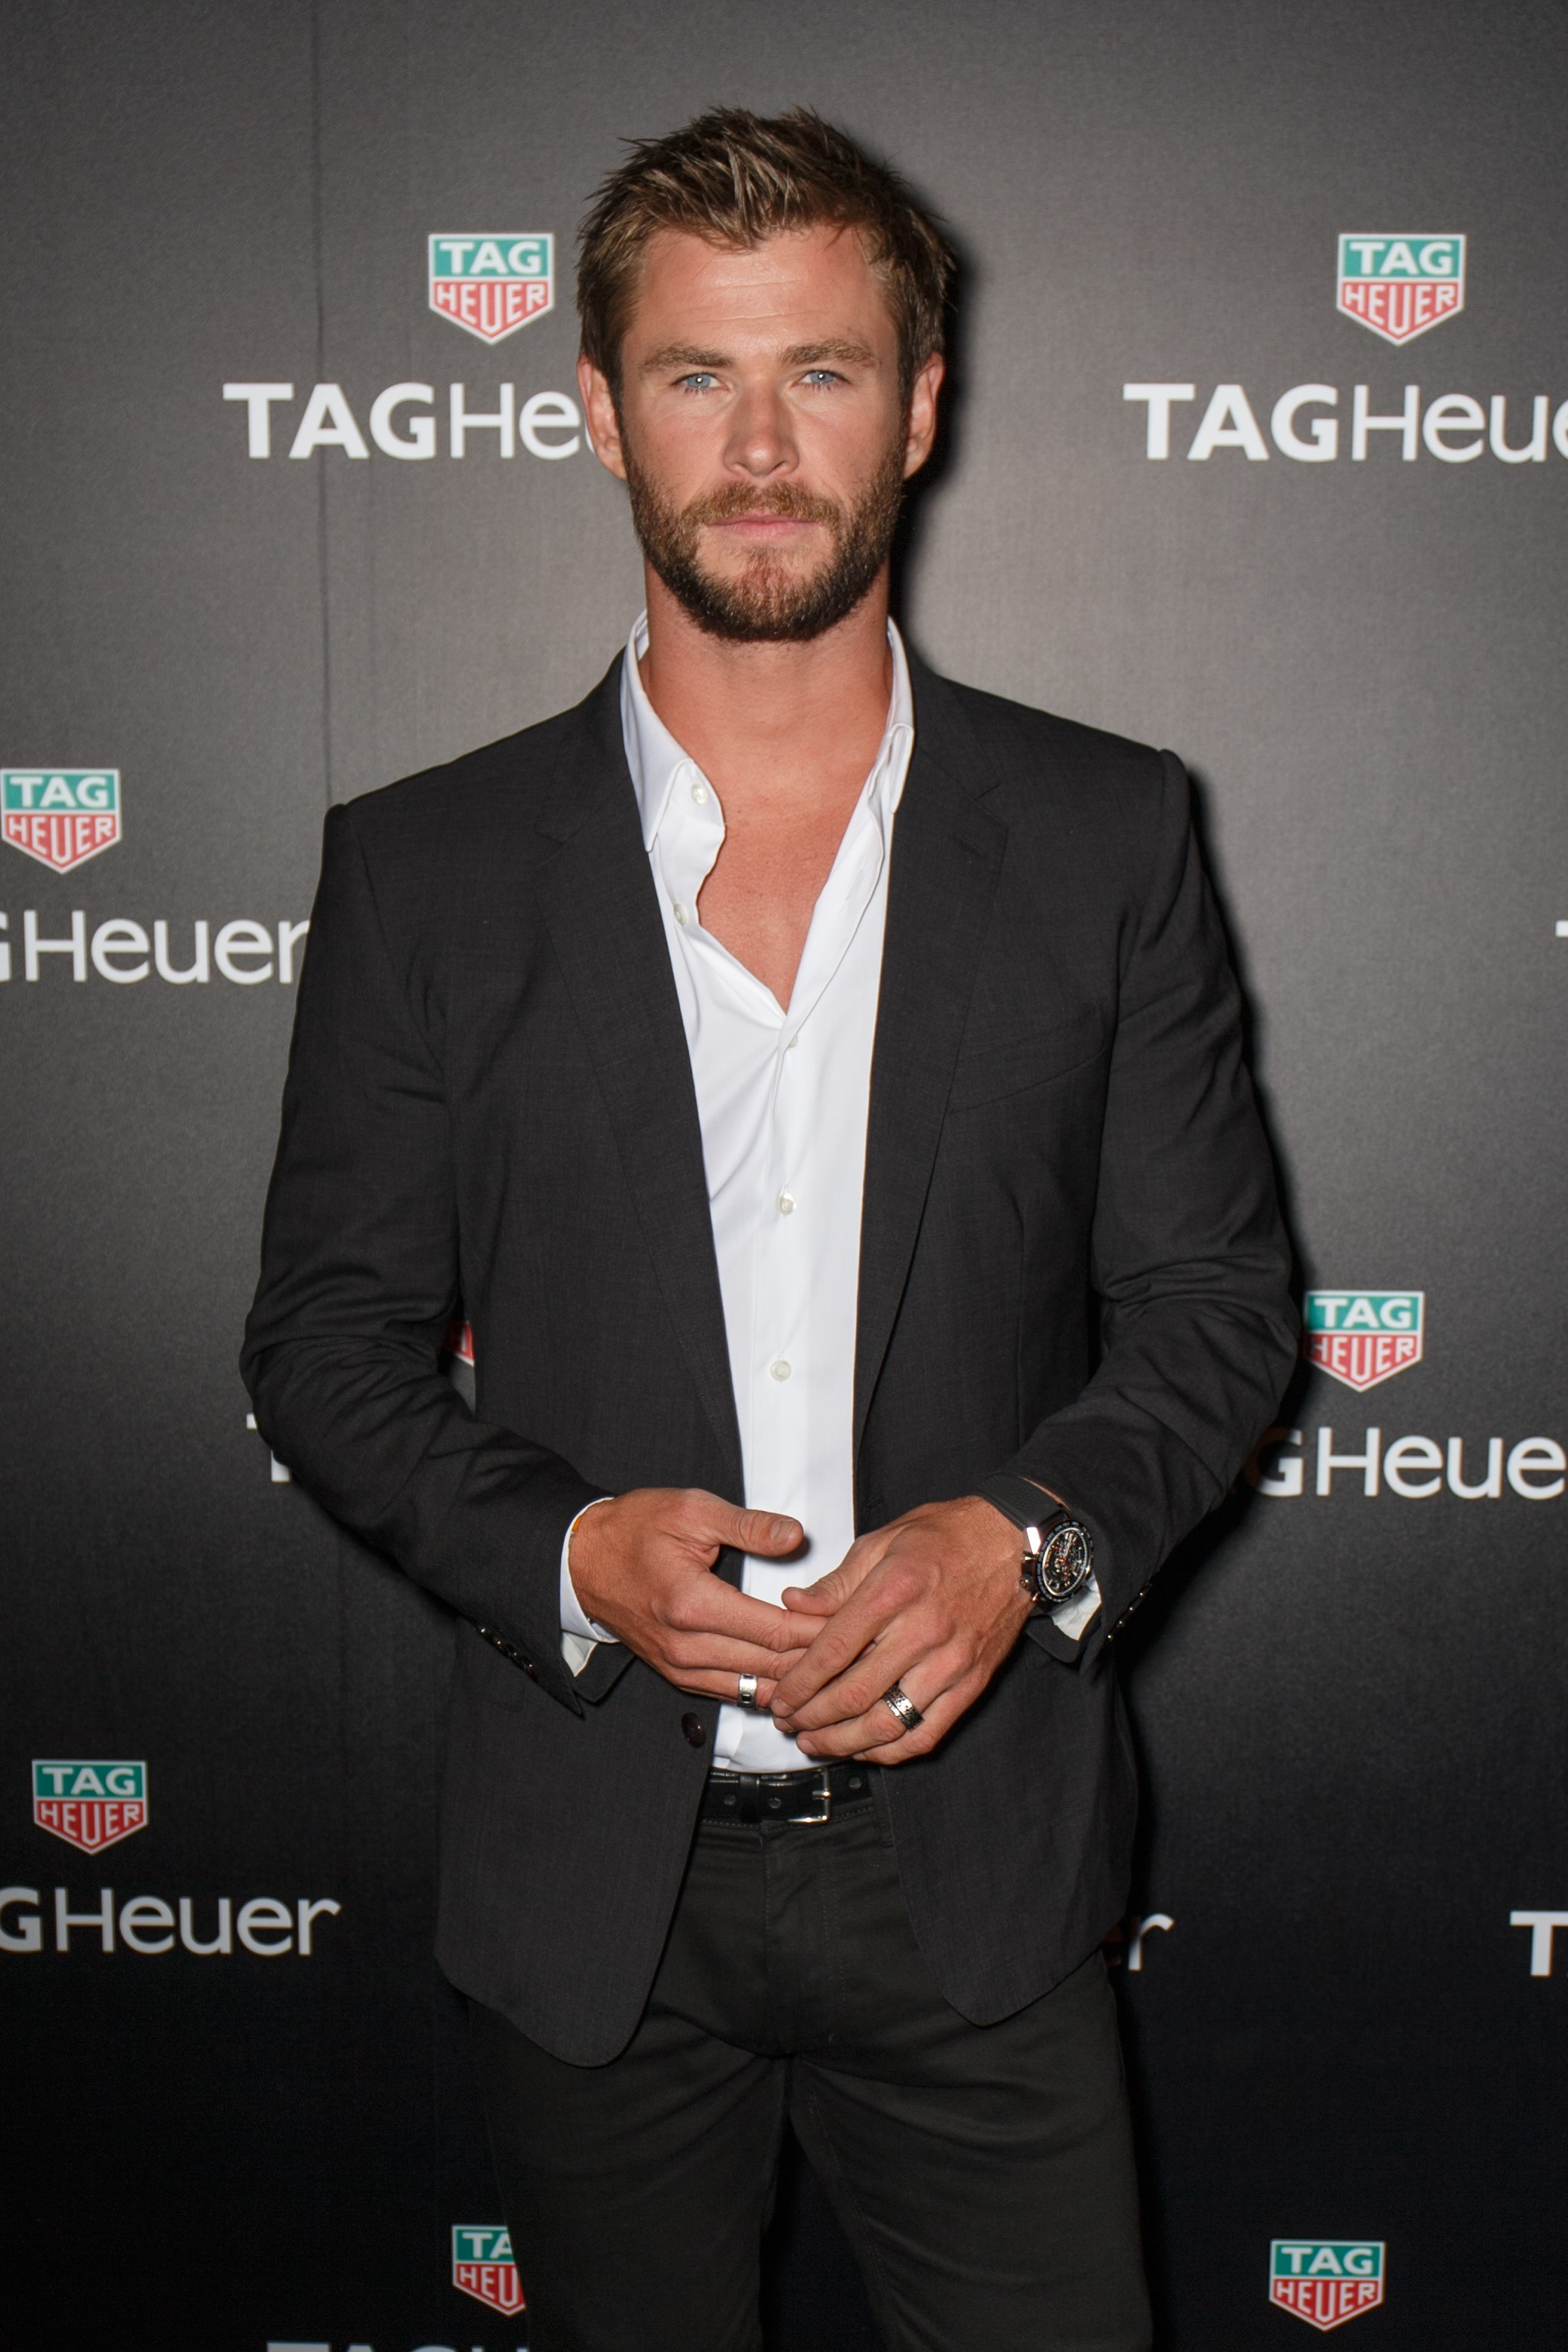 Chris Hemsworth felt suffocated in Hollywood